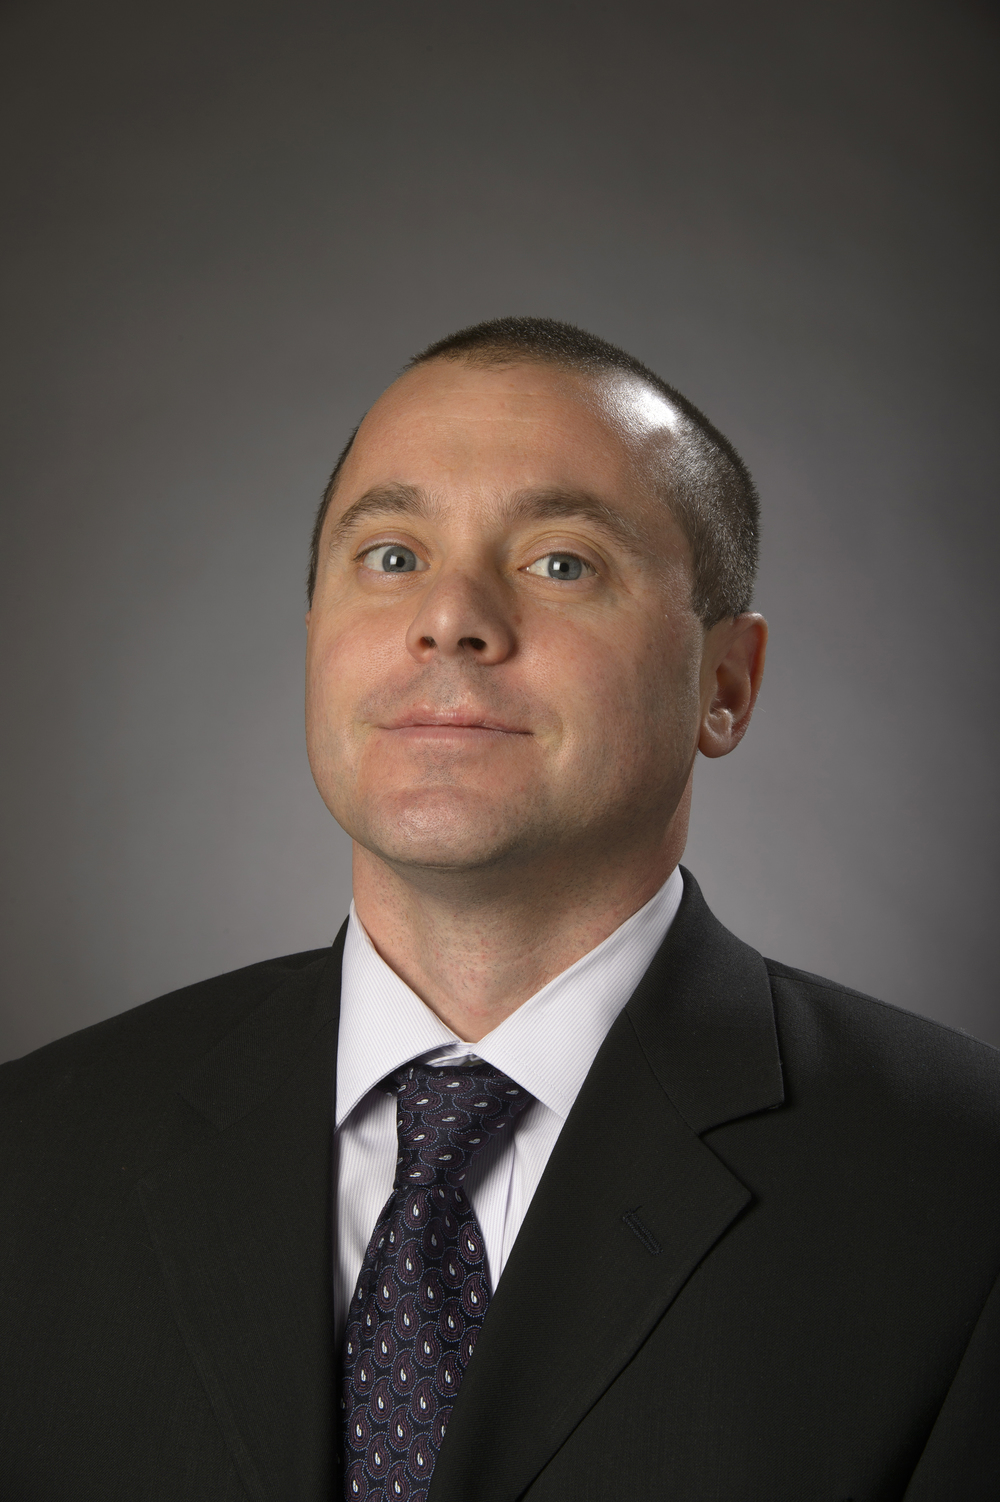 Jason Fleming, Director of Promotions and Special Events for the Colorado Rockies